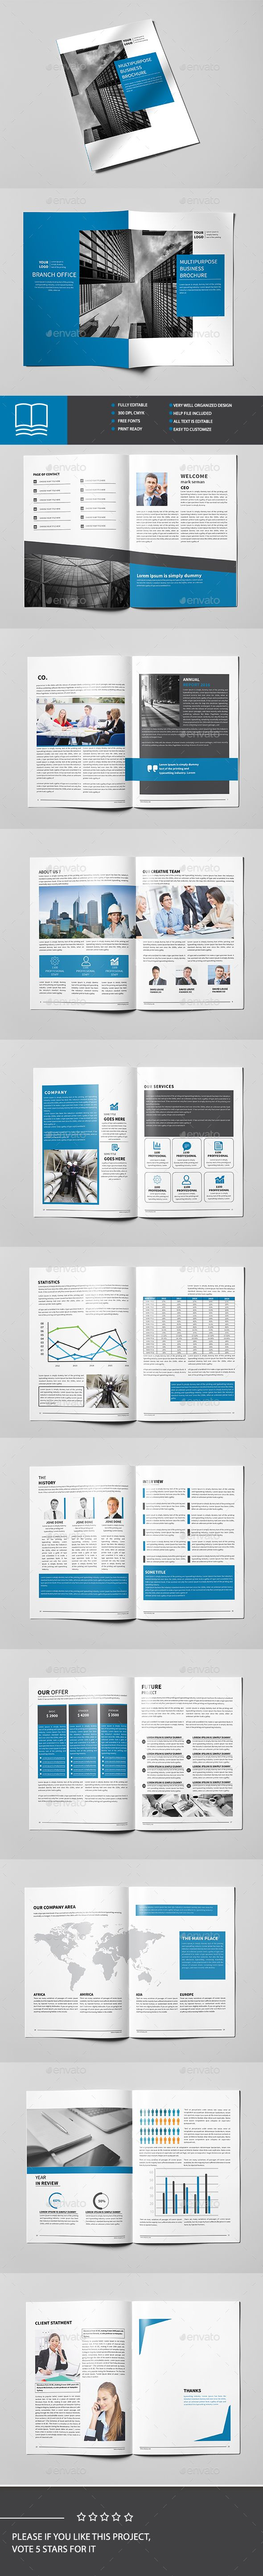 Corporate Brochure   InDesign Template • Download ➝ https://graphicriver.net/item/corporate-brochure-template/17119760?ref=pxcr